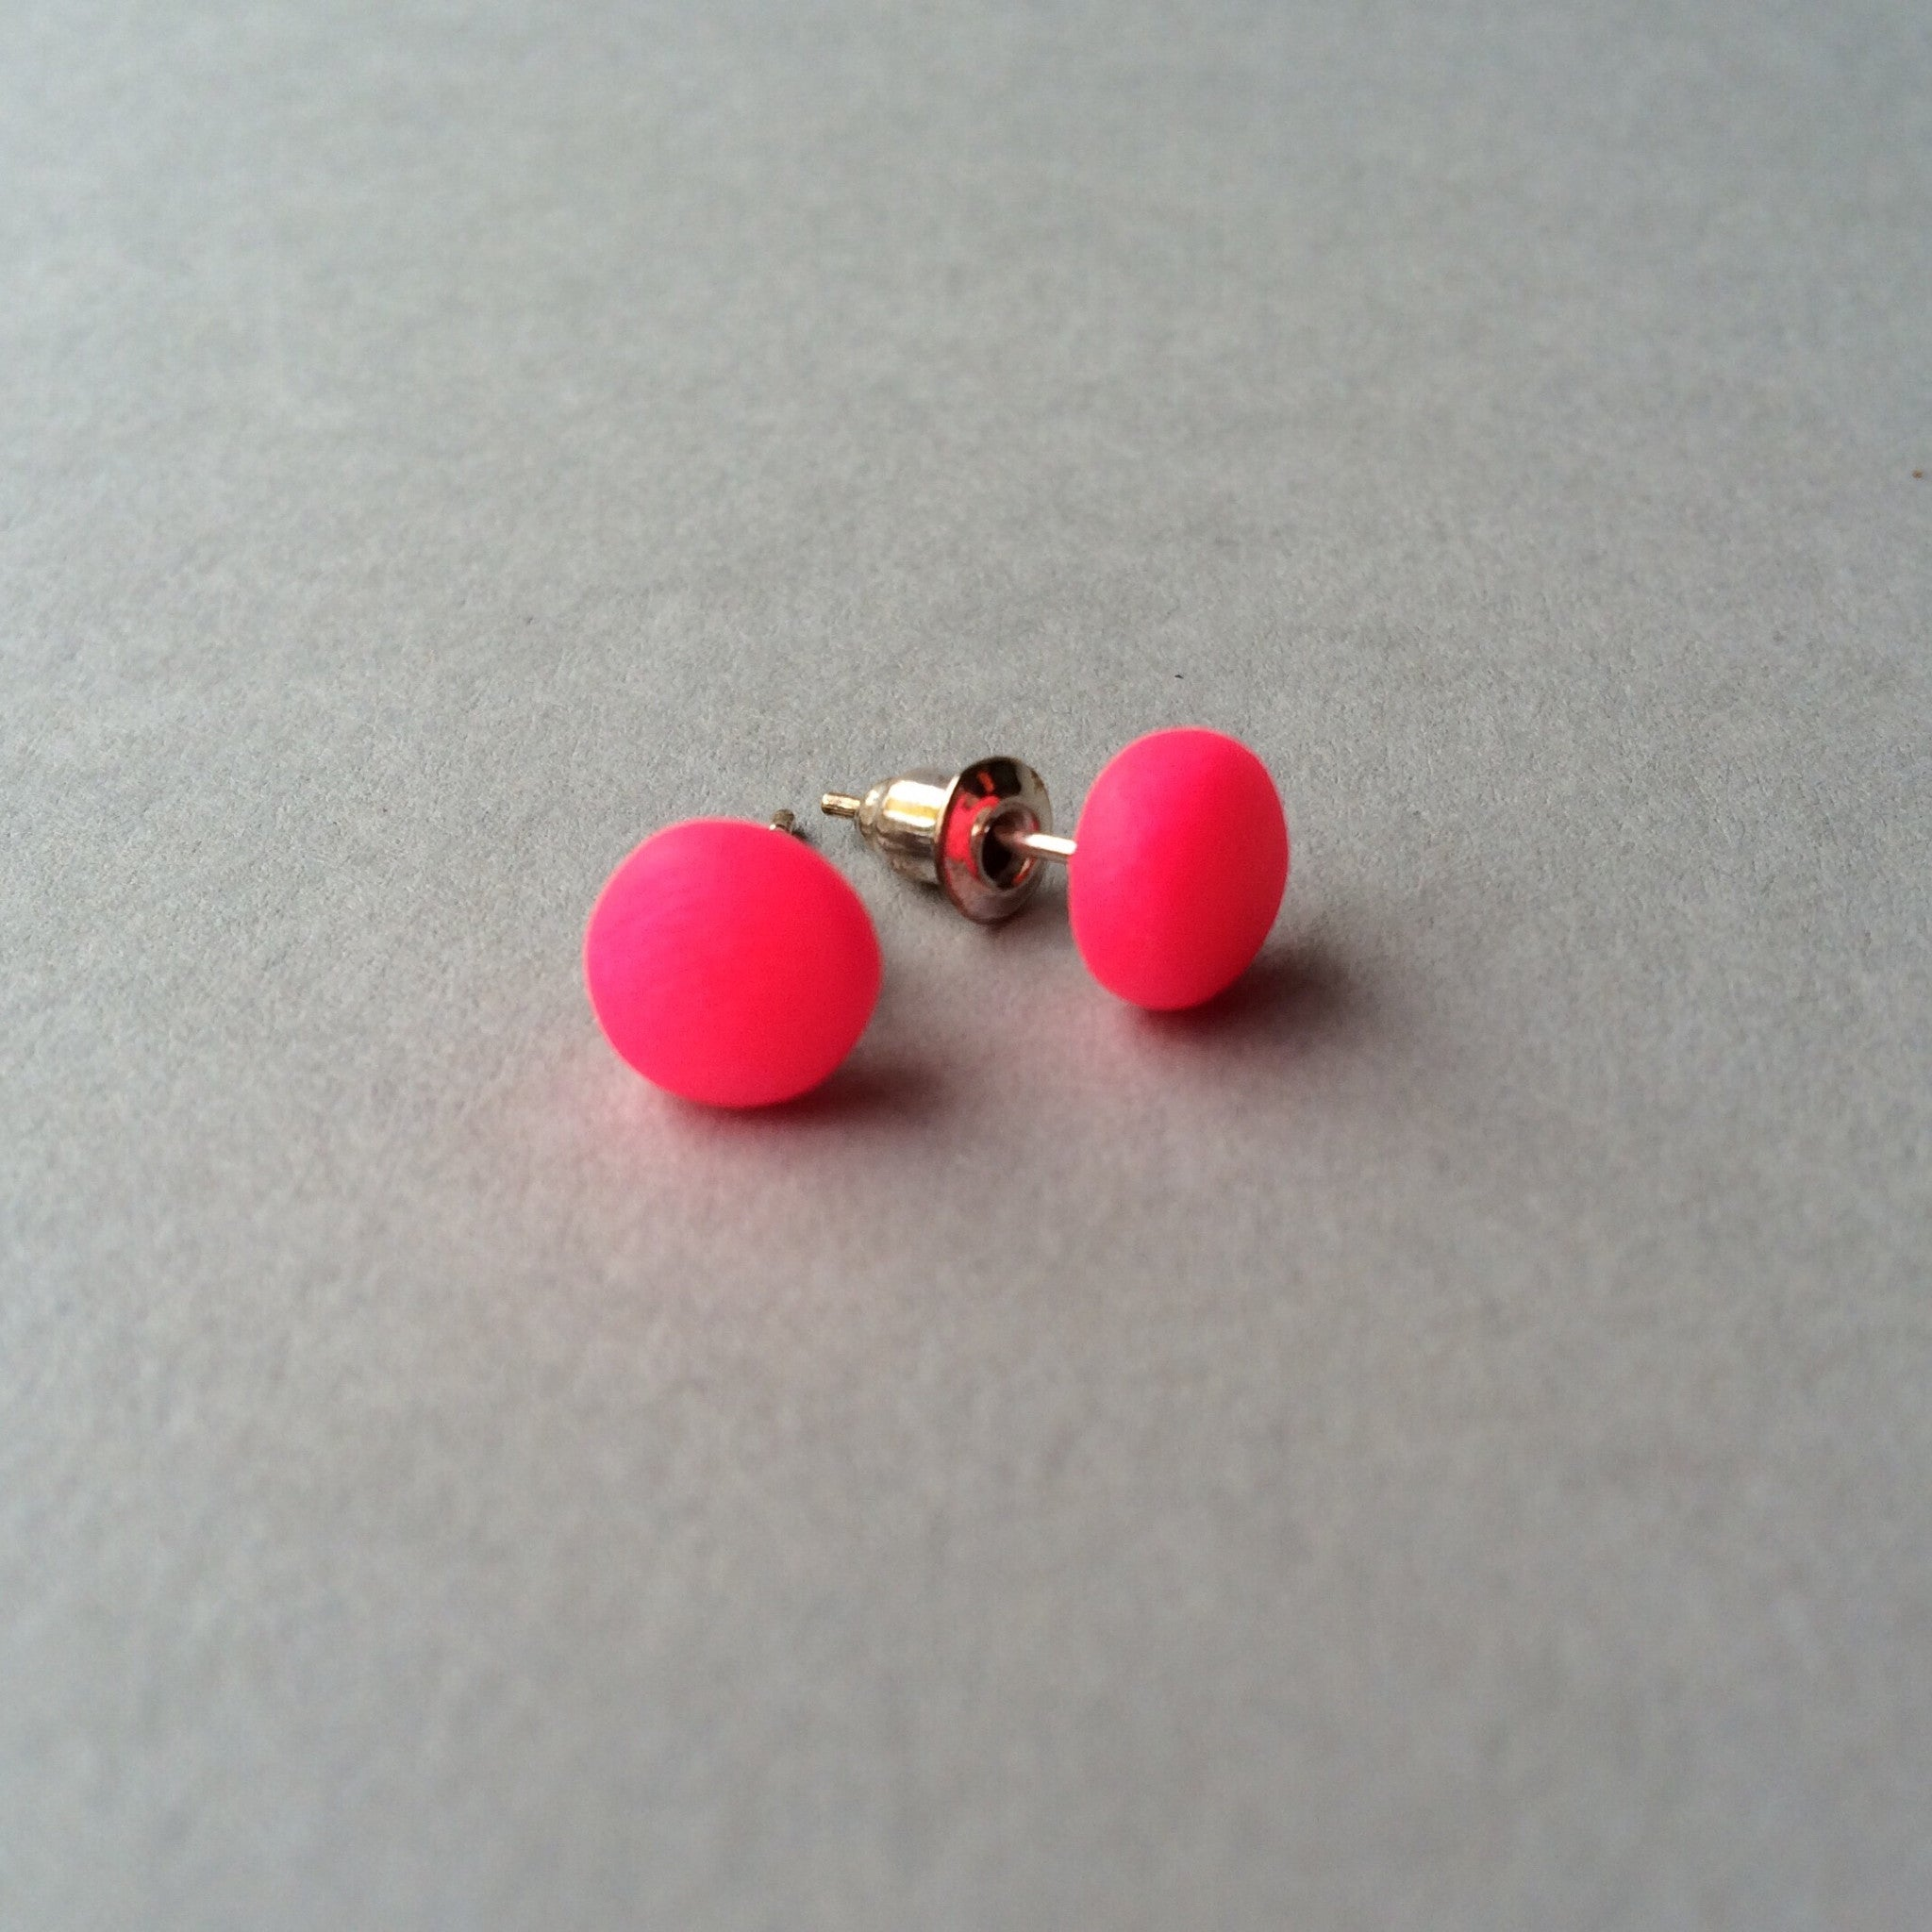 drop s in npink clarissa earring do earrings ball pink neon product cl francesca bauble